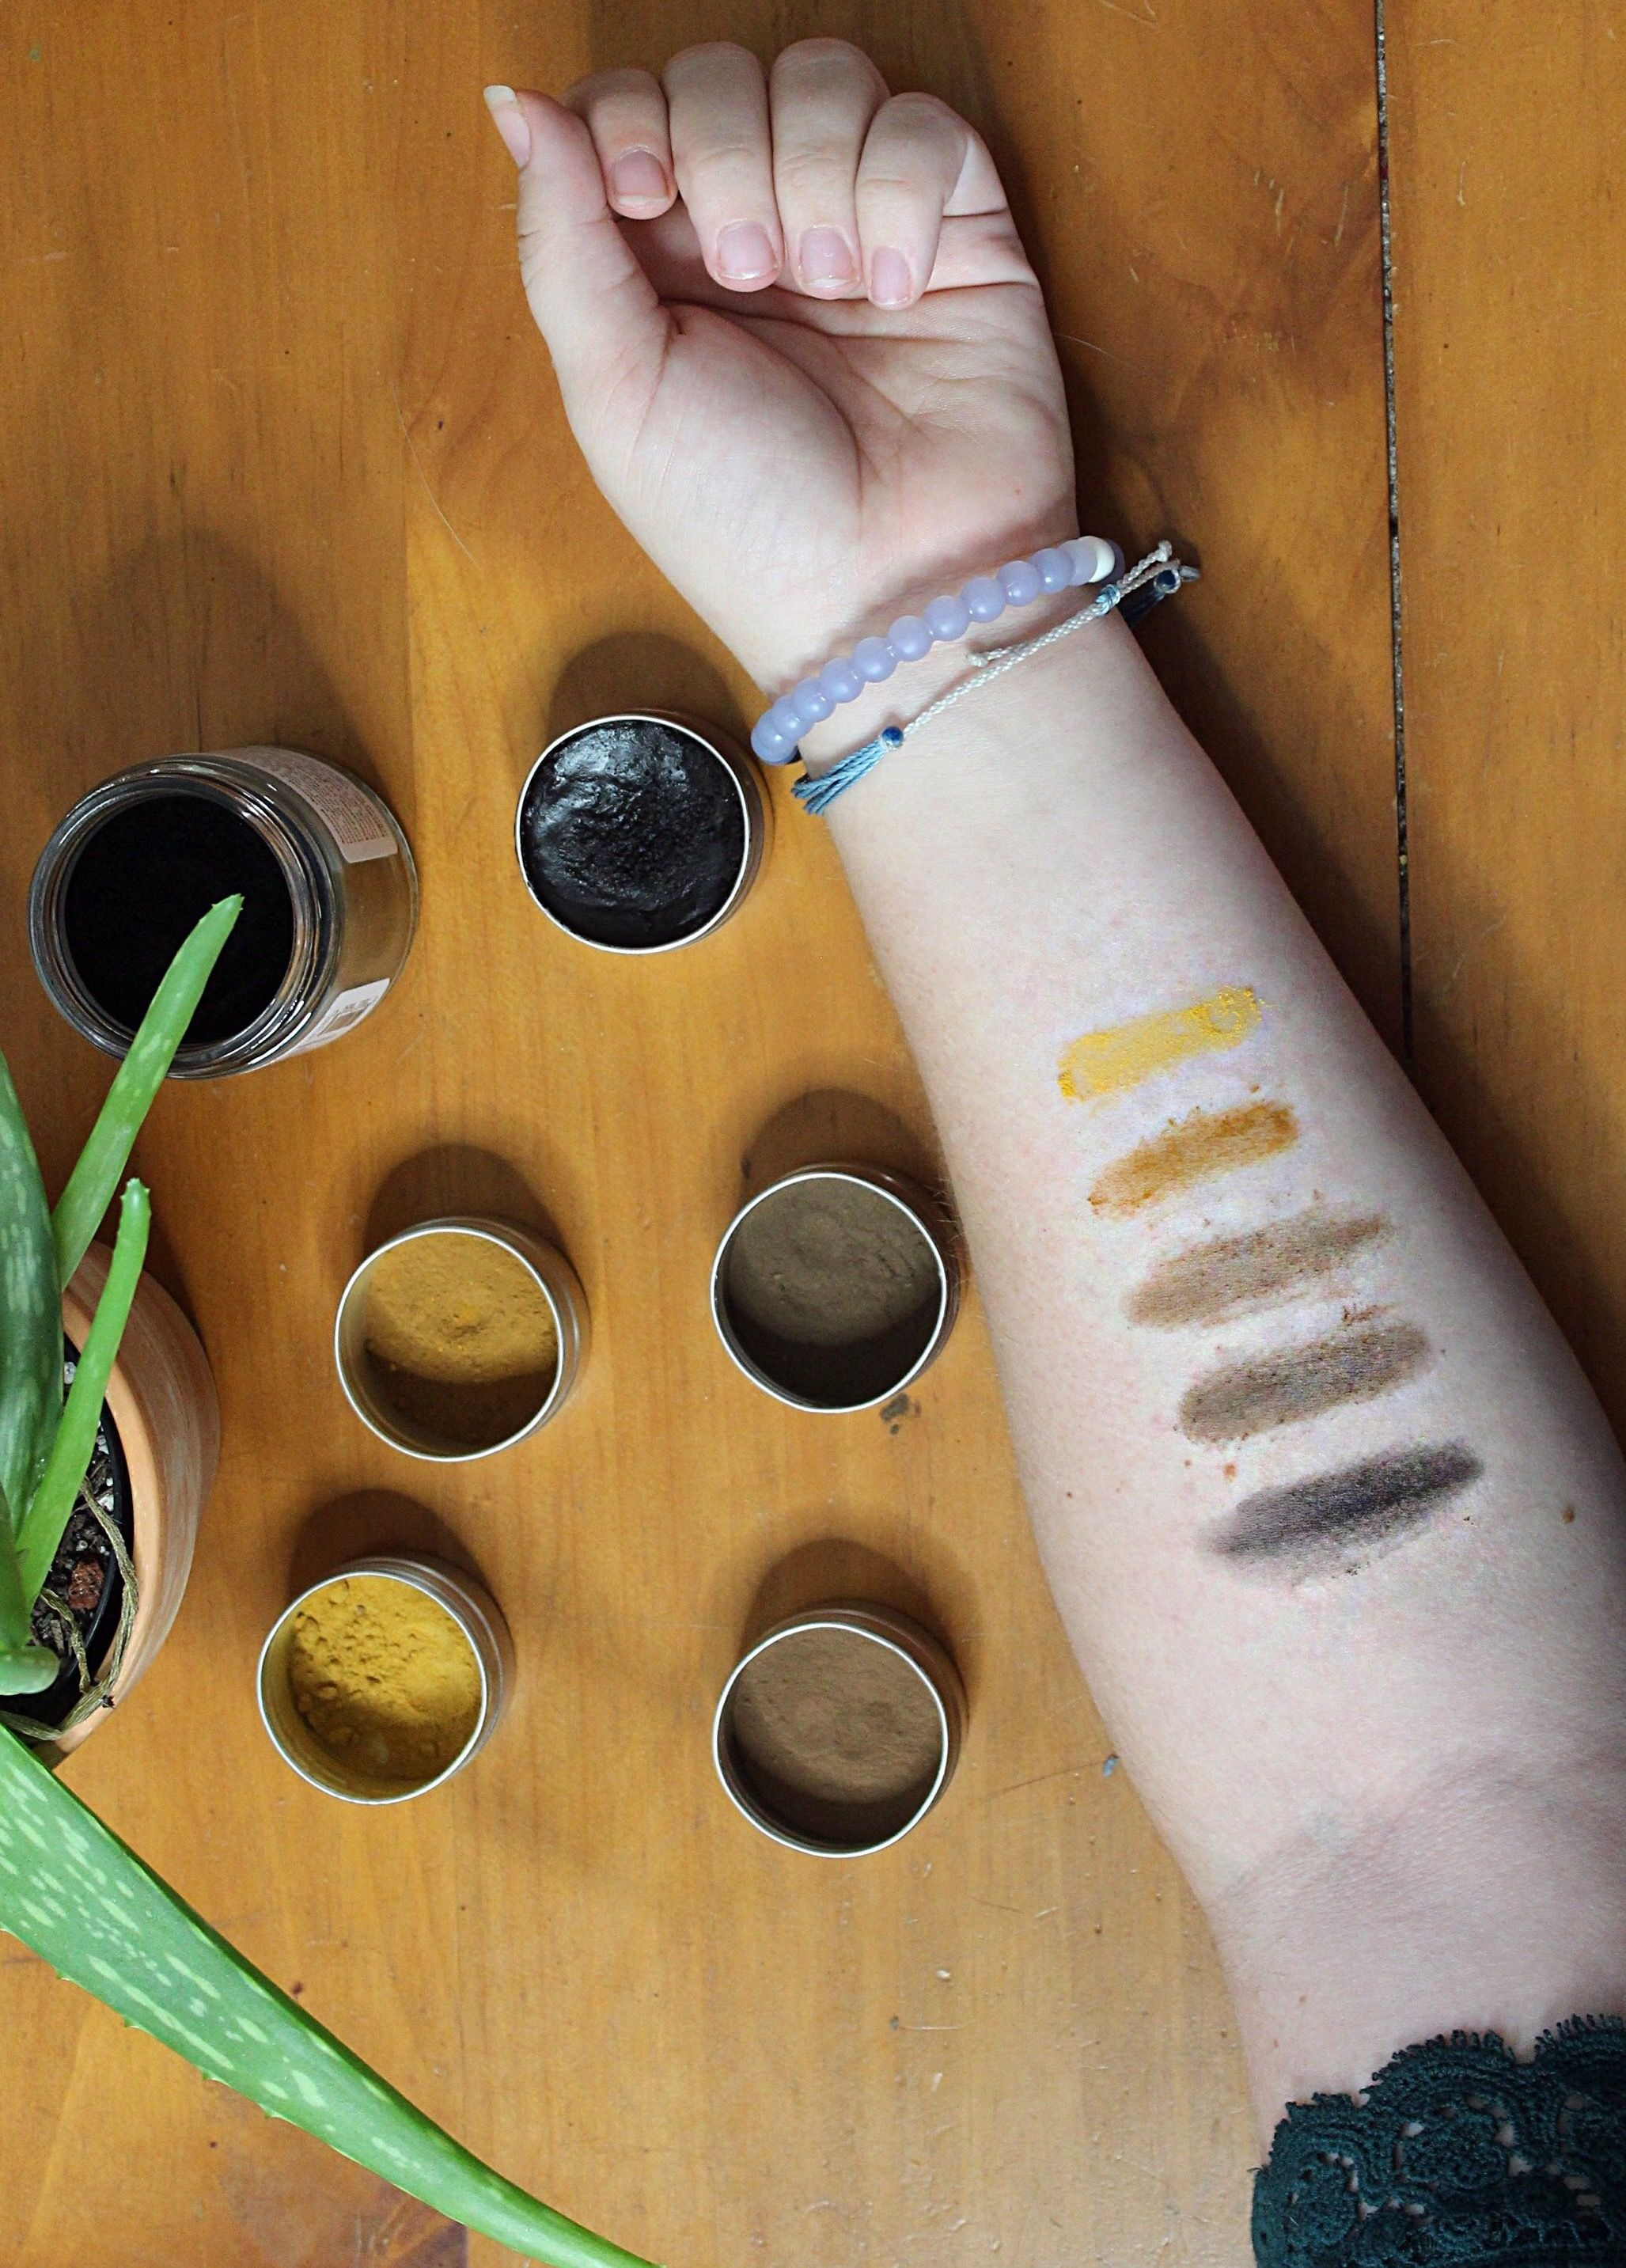 Zero Waste Makeup Recipes Diy natural products, Zero